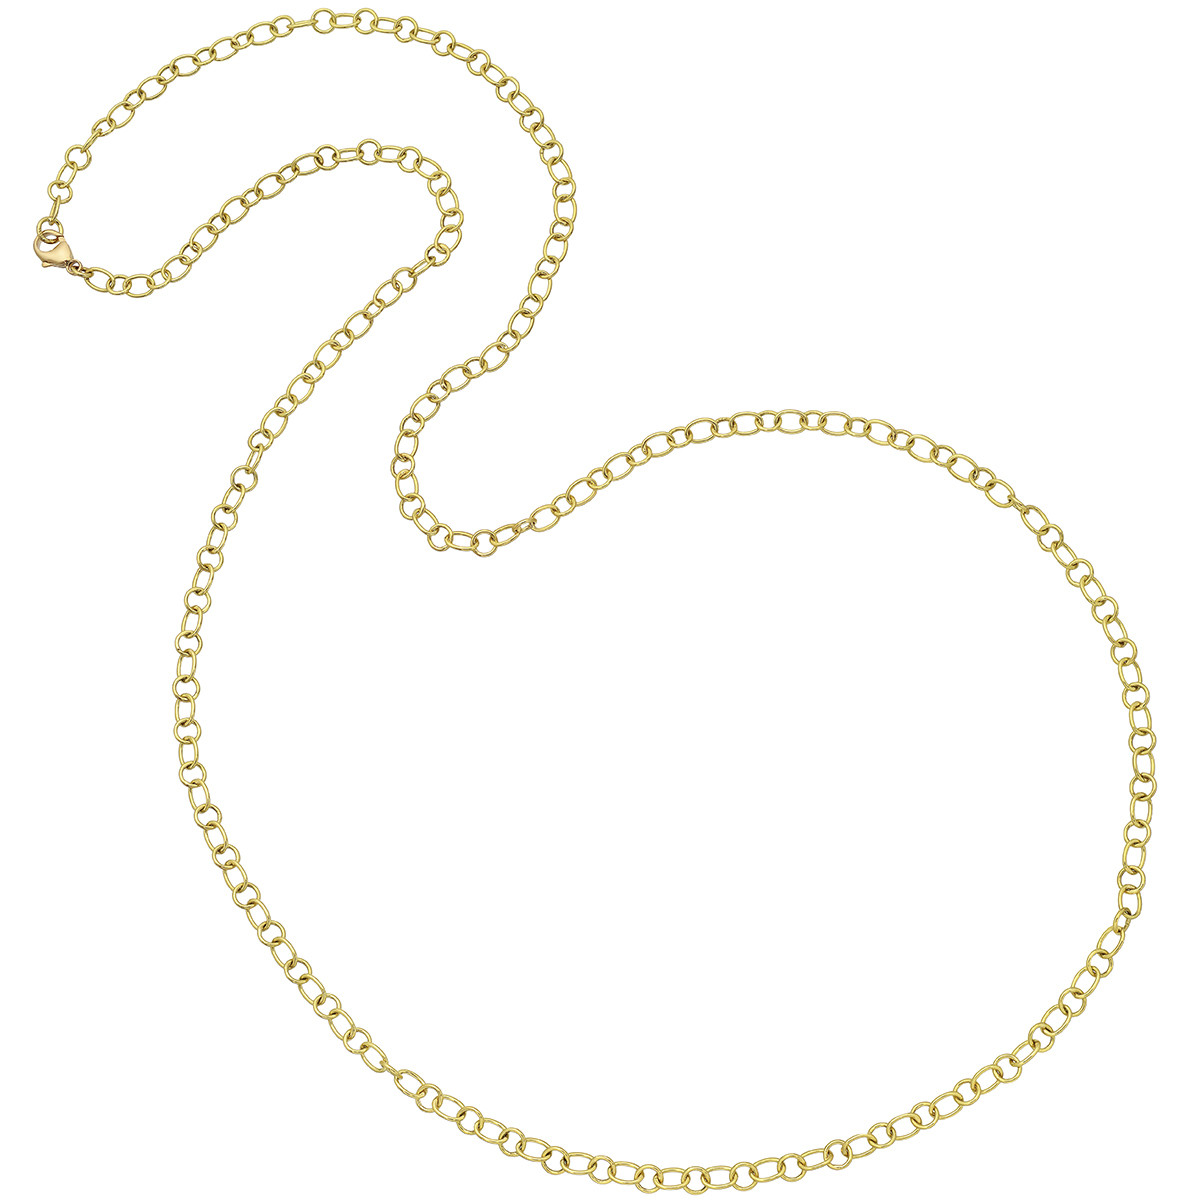 18k Yellow Gold Oval & Round Link Long Necklace